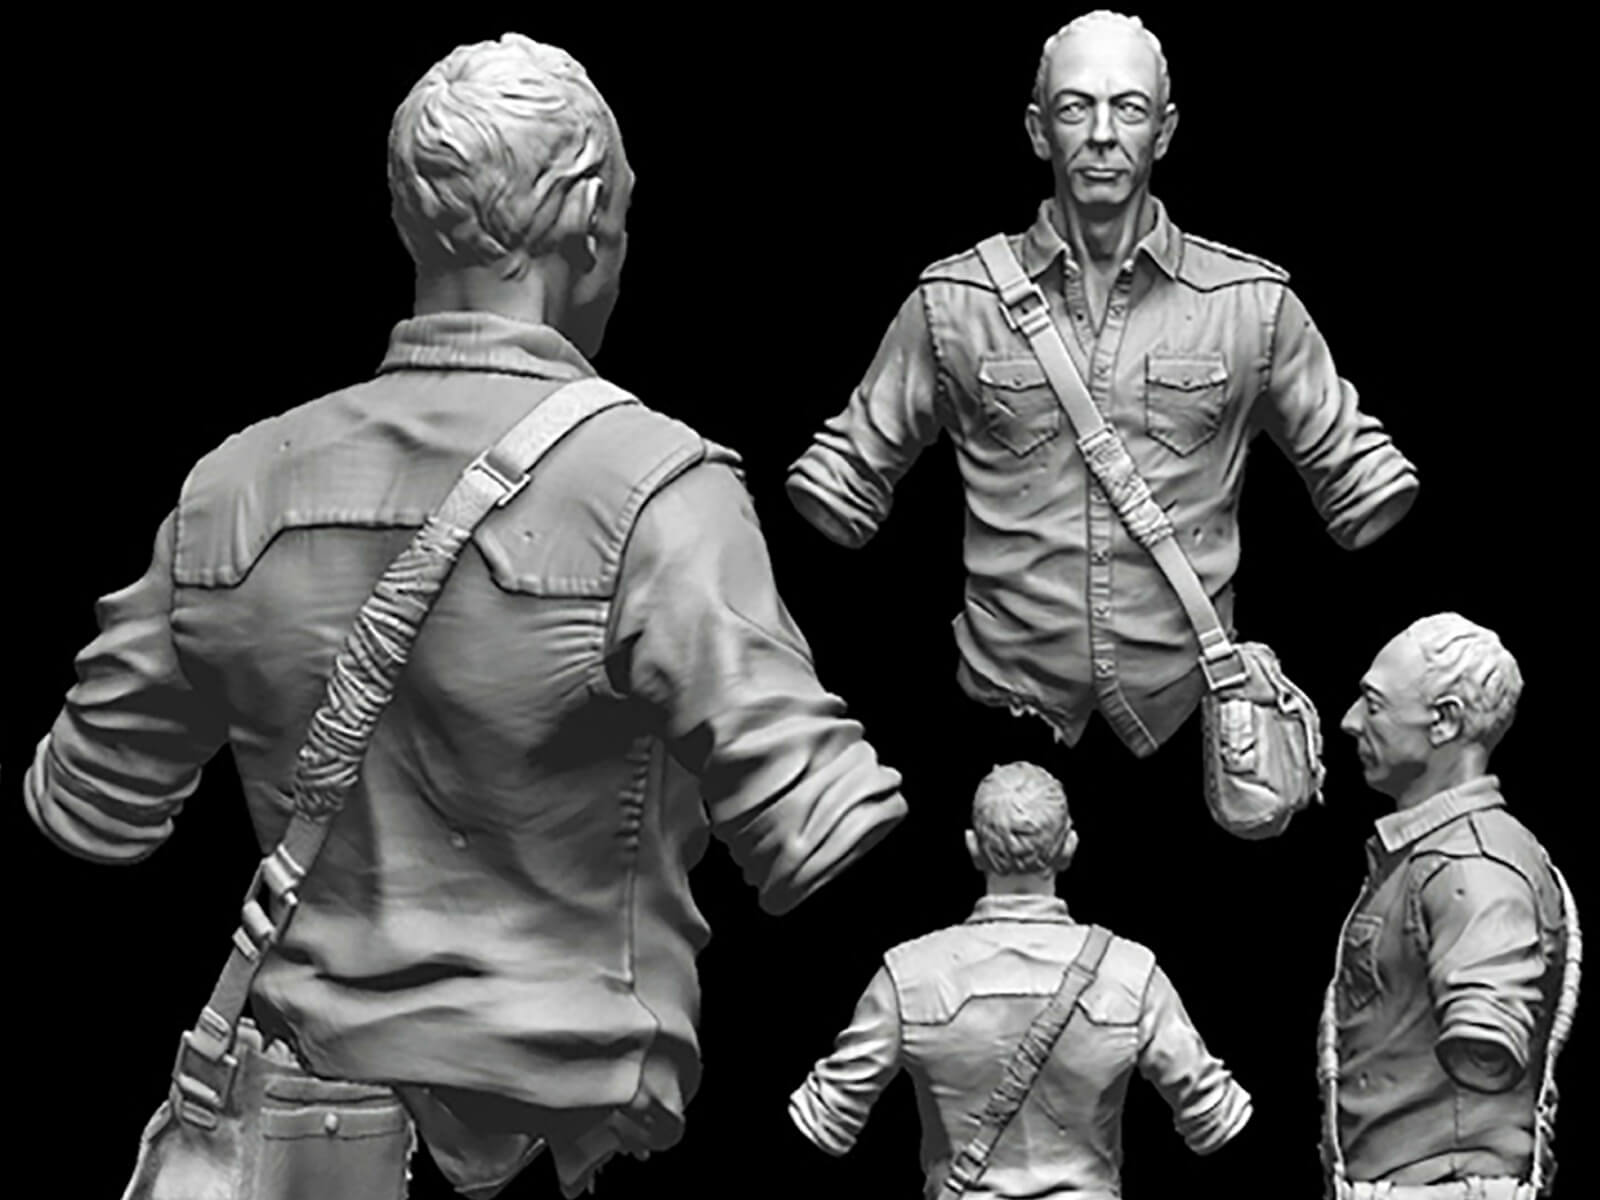 computer-generated 3d models of an older man in a safari shirt with a small messenger bag slung across his chest